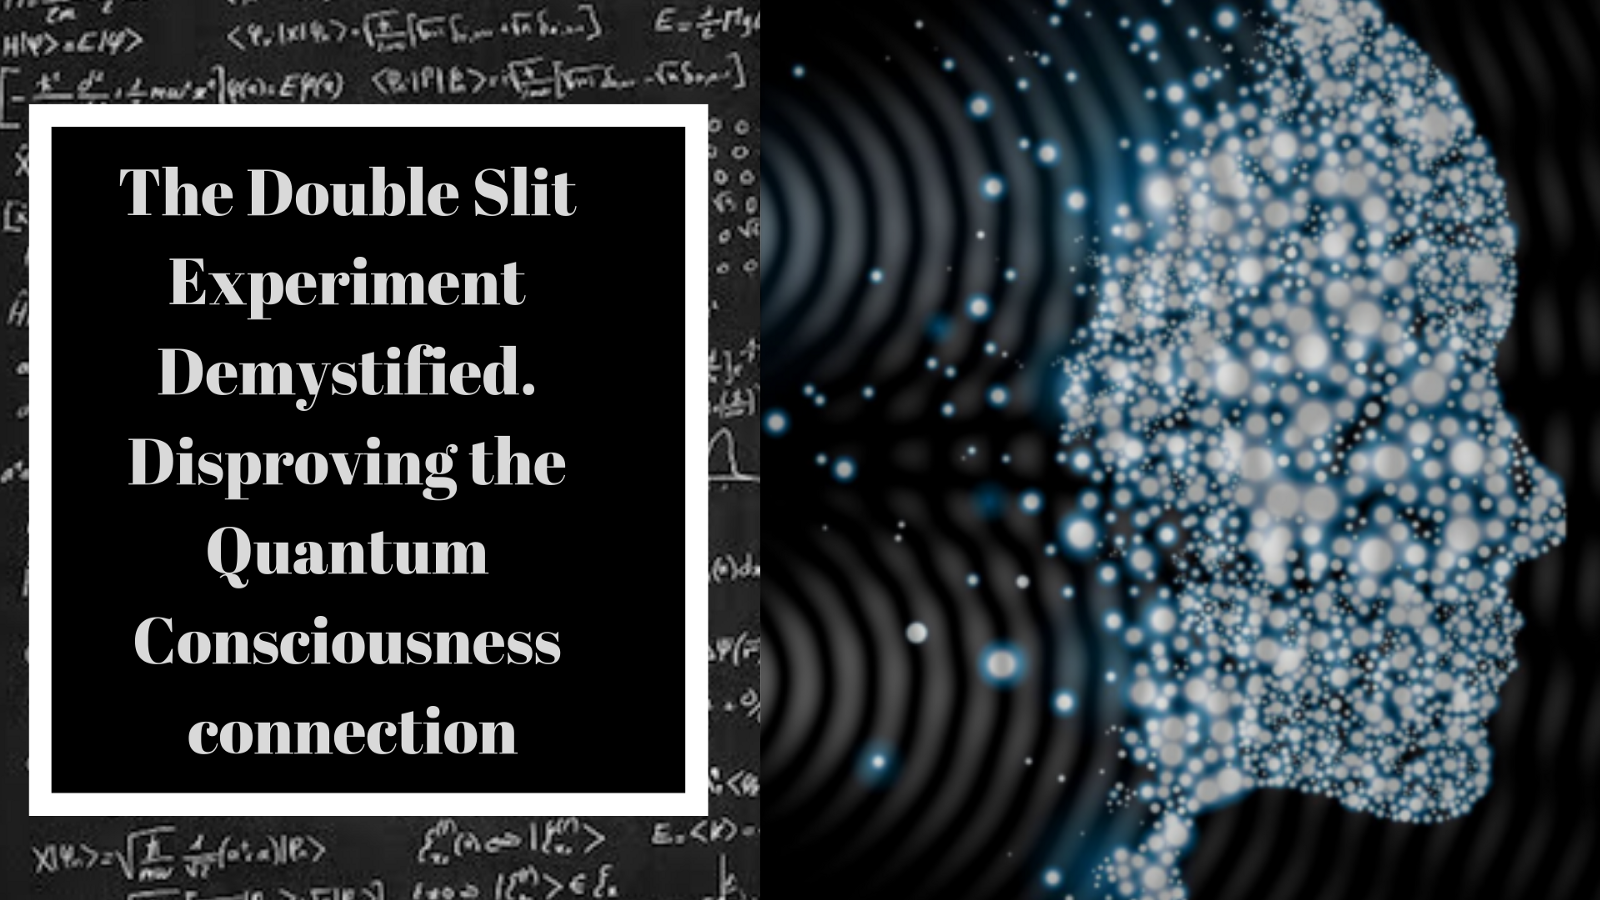 1457314e99 The Double Slit Experiment Demystified. Disproving the Quantum  Consciousness connection